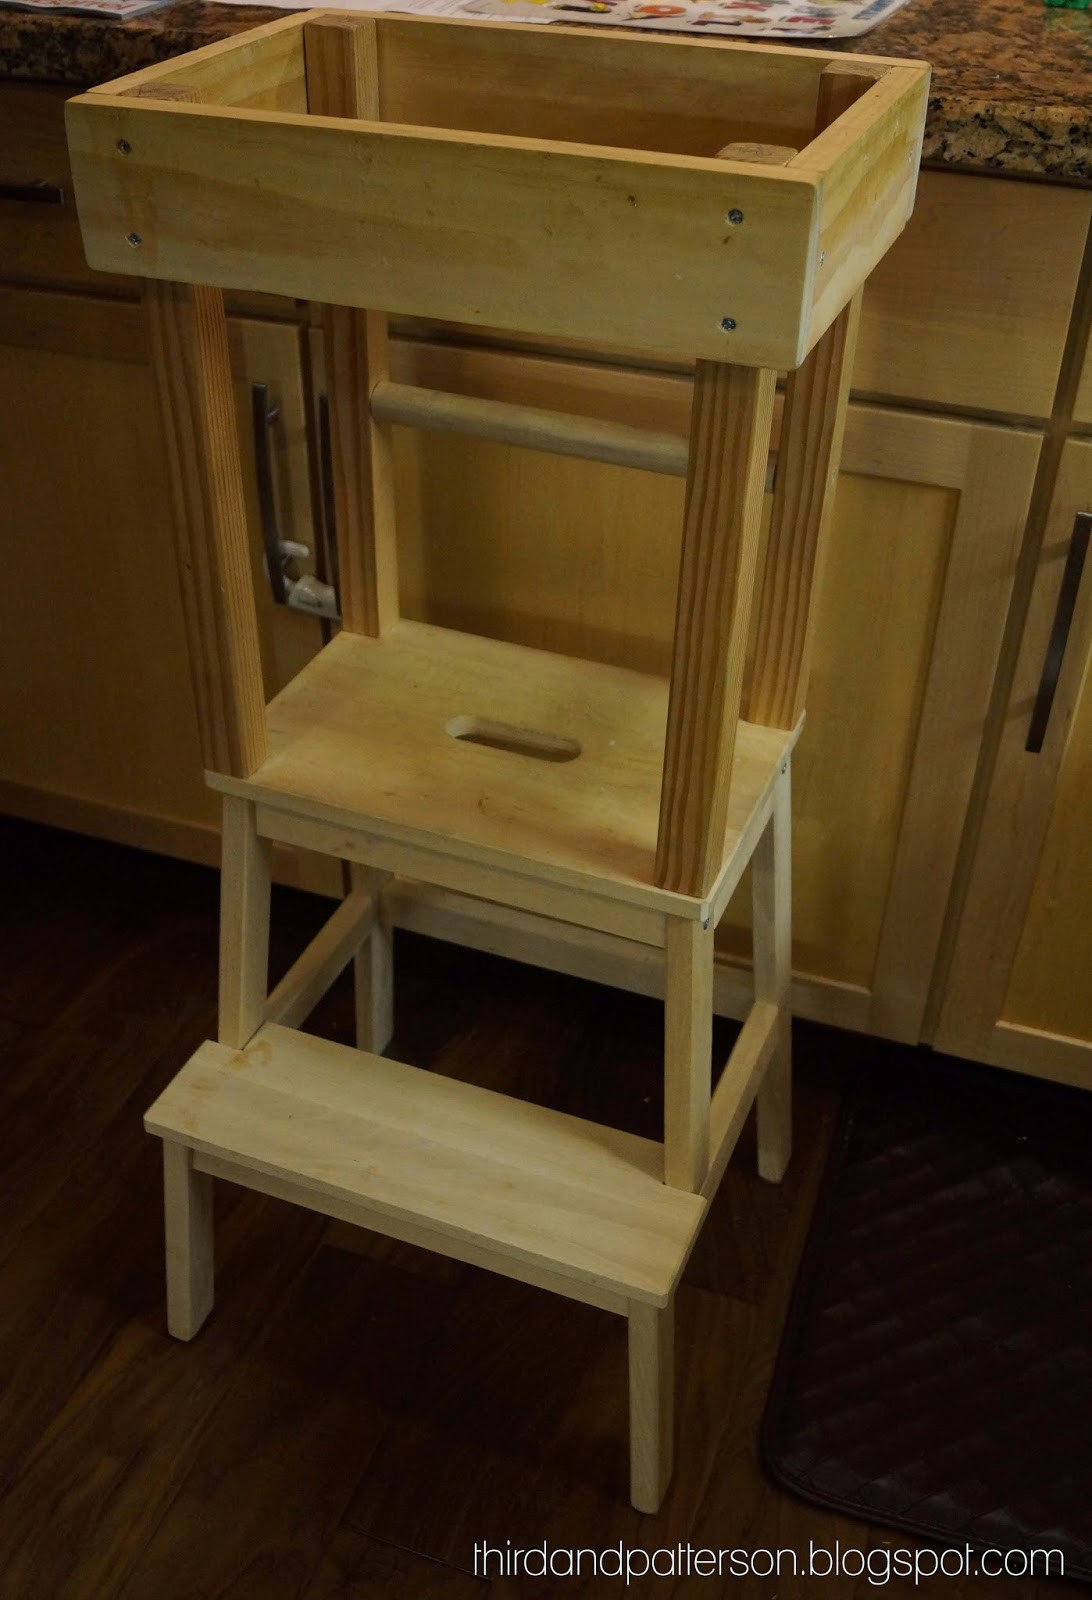 Best ideas about DIY Learning Tower . Save or Pin Third and Patterson DIY Toddler Learning Tower Now.